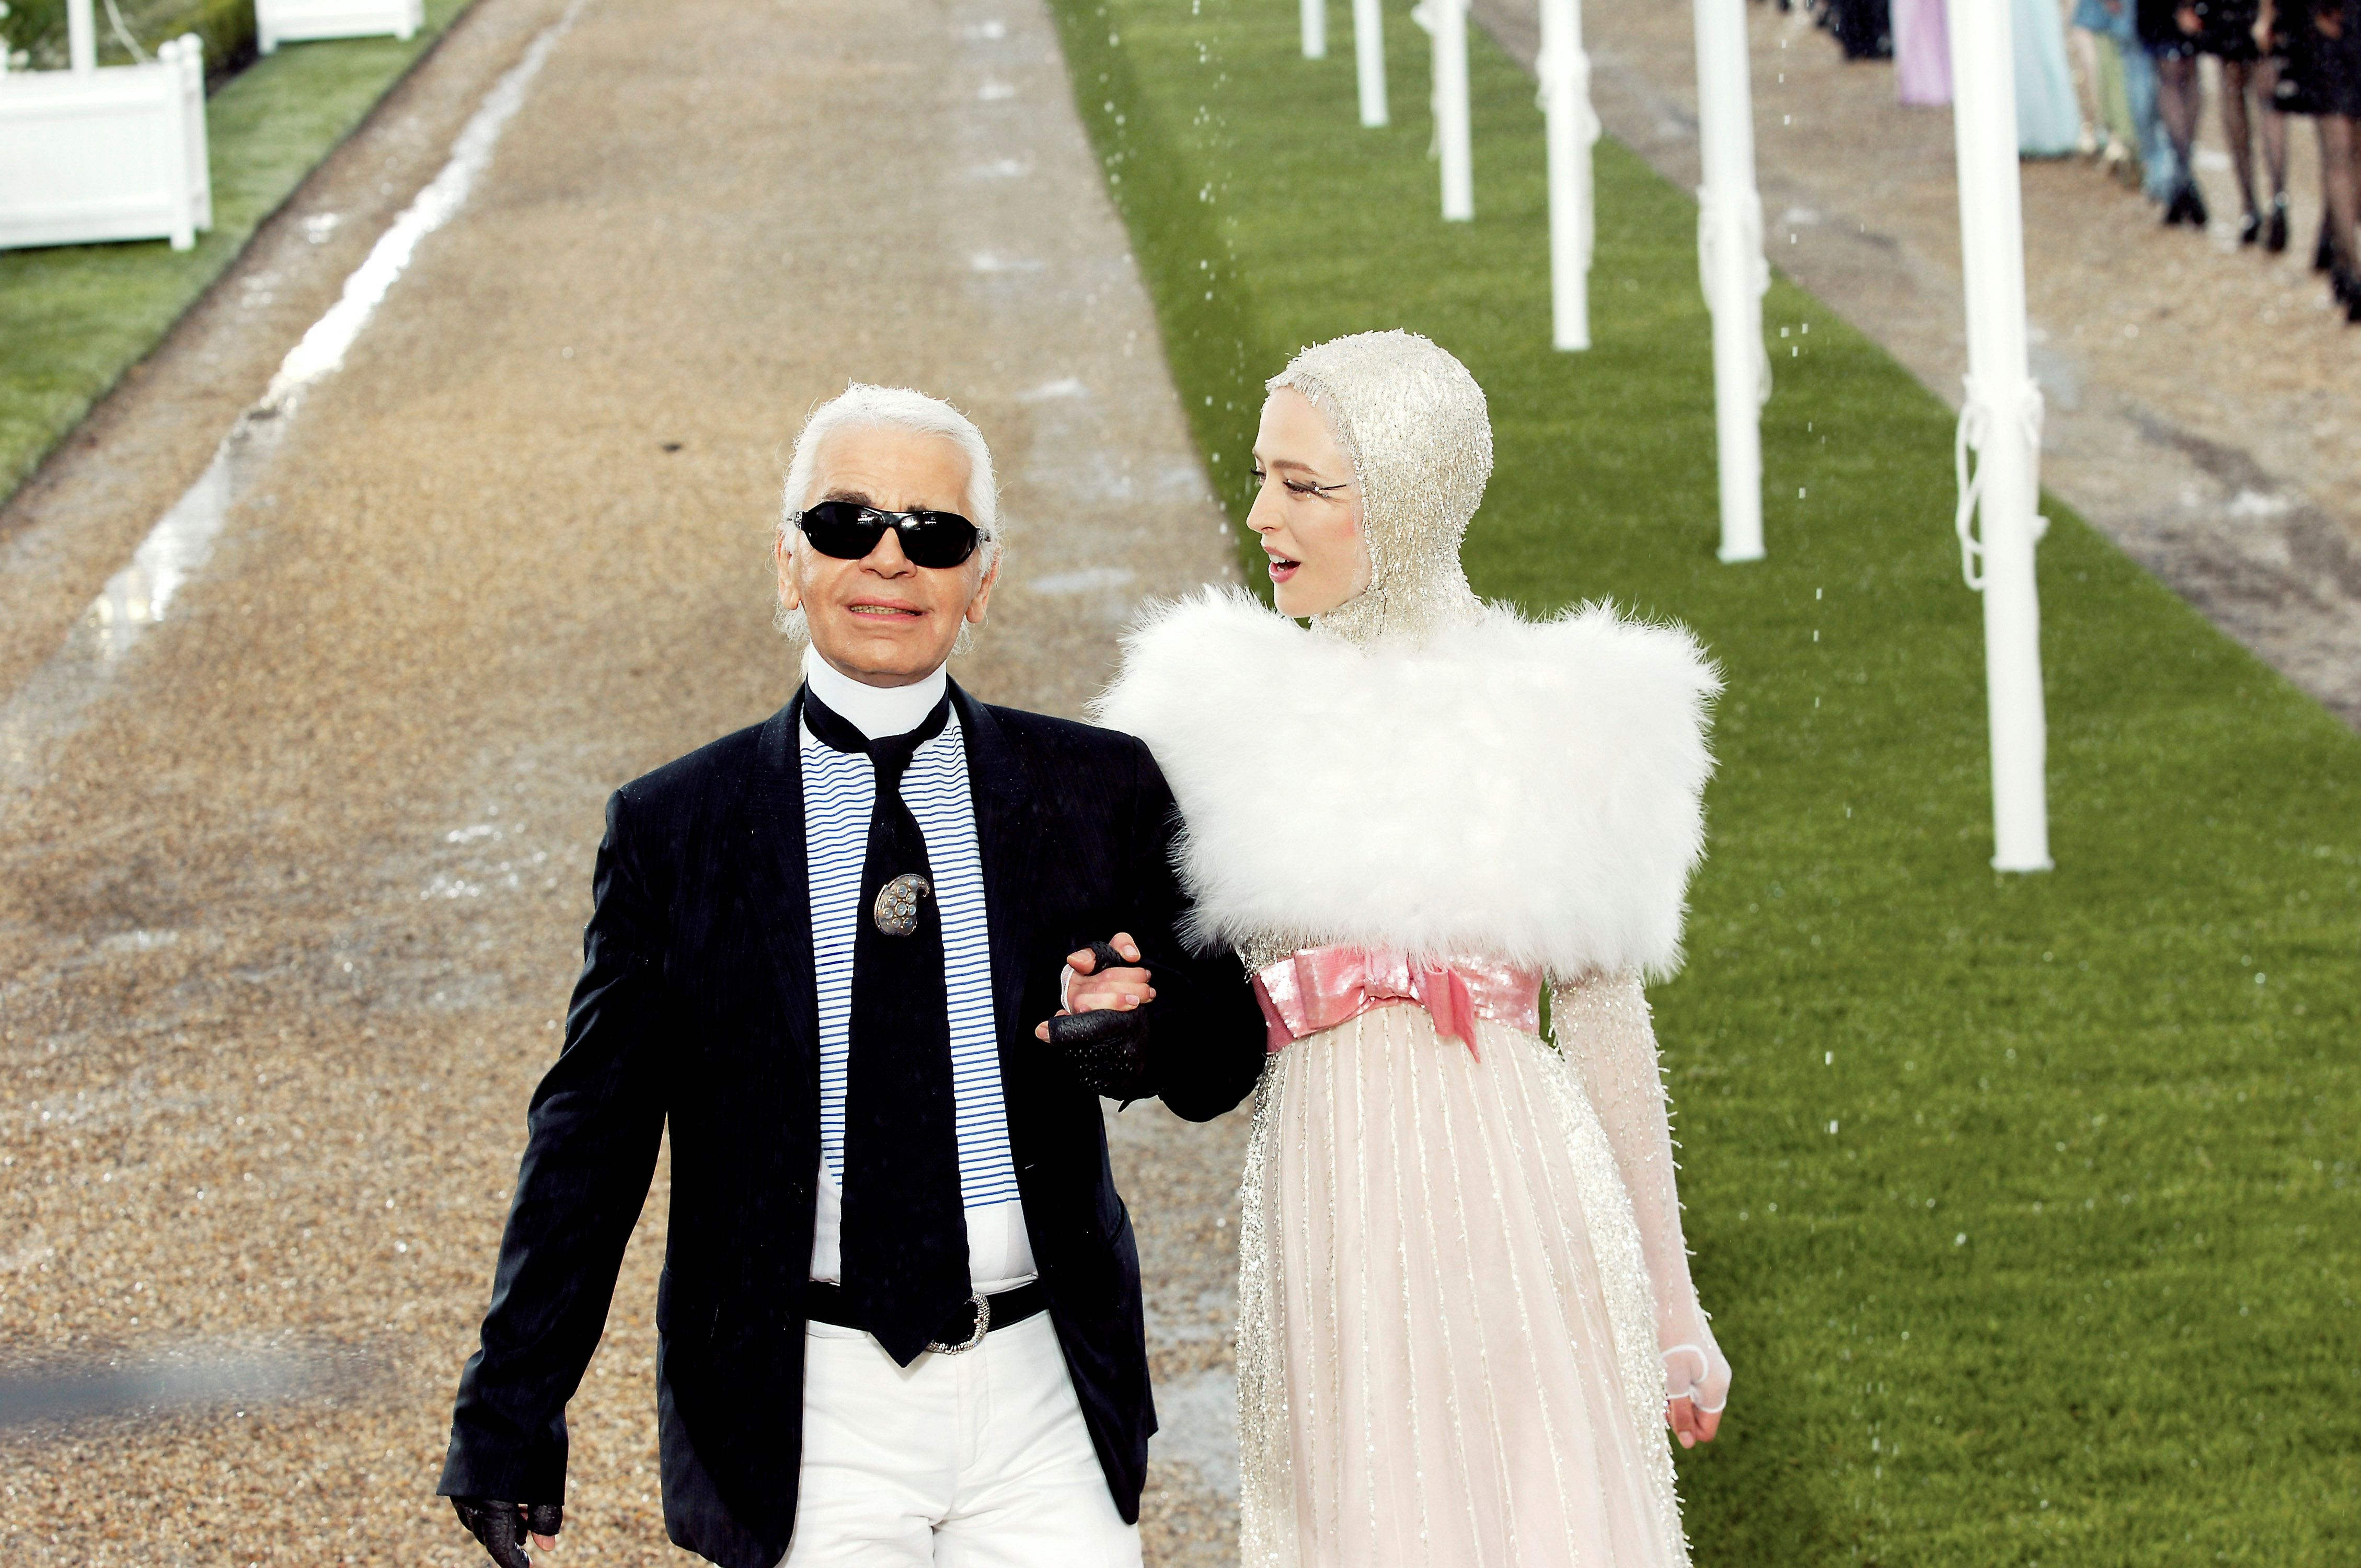 PARIS - JULY 03:  (UK OUT)  Designer Karl Lagerfeld walks down the catwalk during the Chanel Fashion show, during Paris Haute Couture Fashion Week Autumn/Winter 2007-08 on July 3, 2007 in Paris, France.  (Photo by Chris Moore/Catwalking/Getty Images)